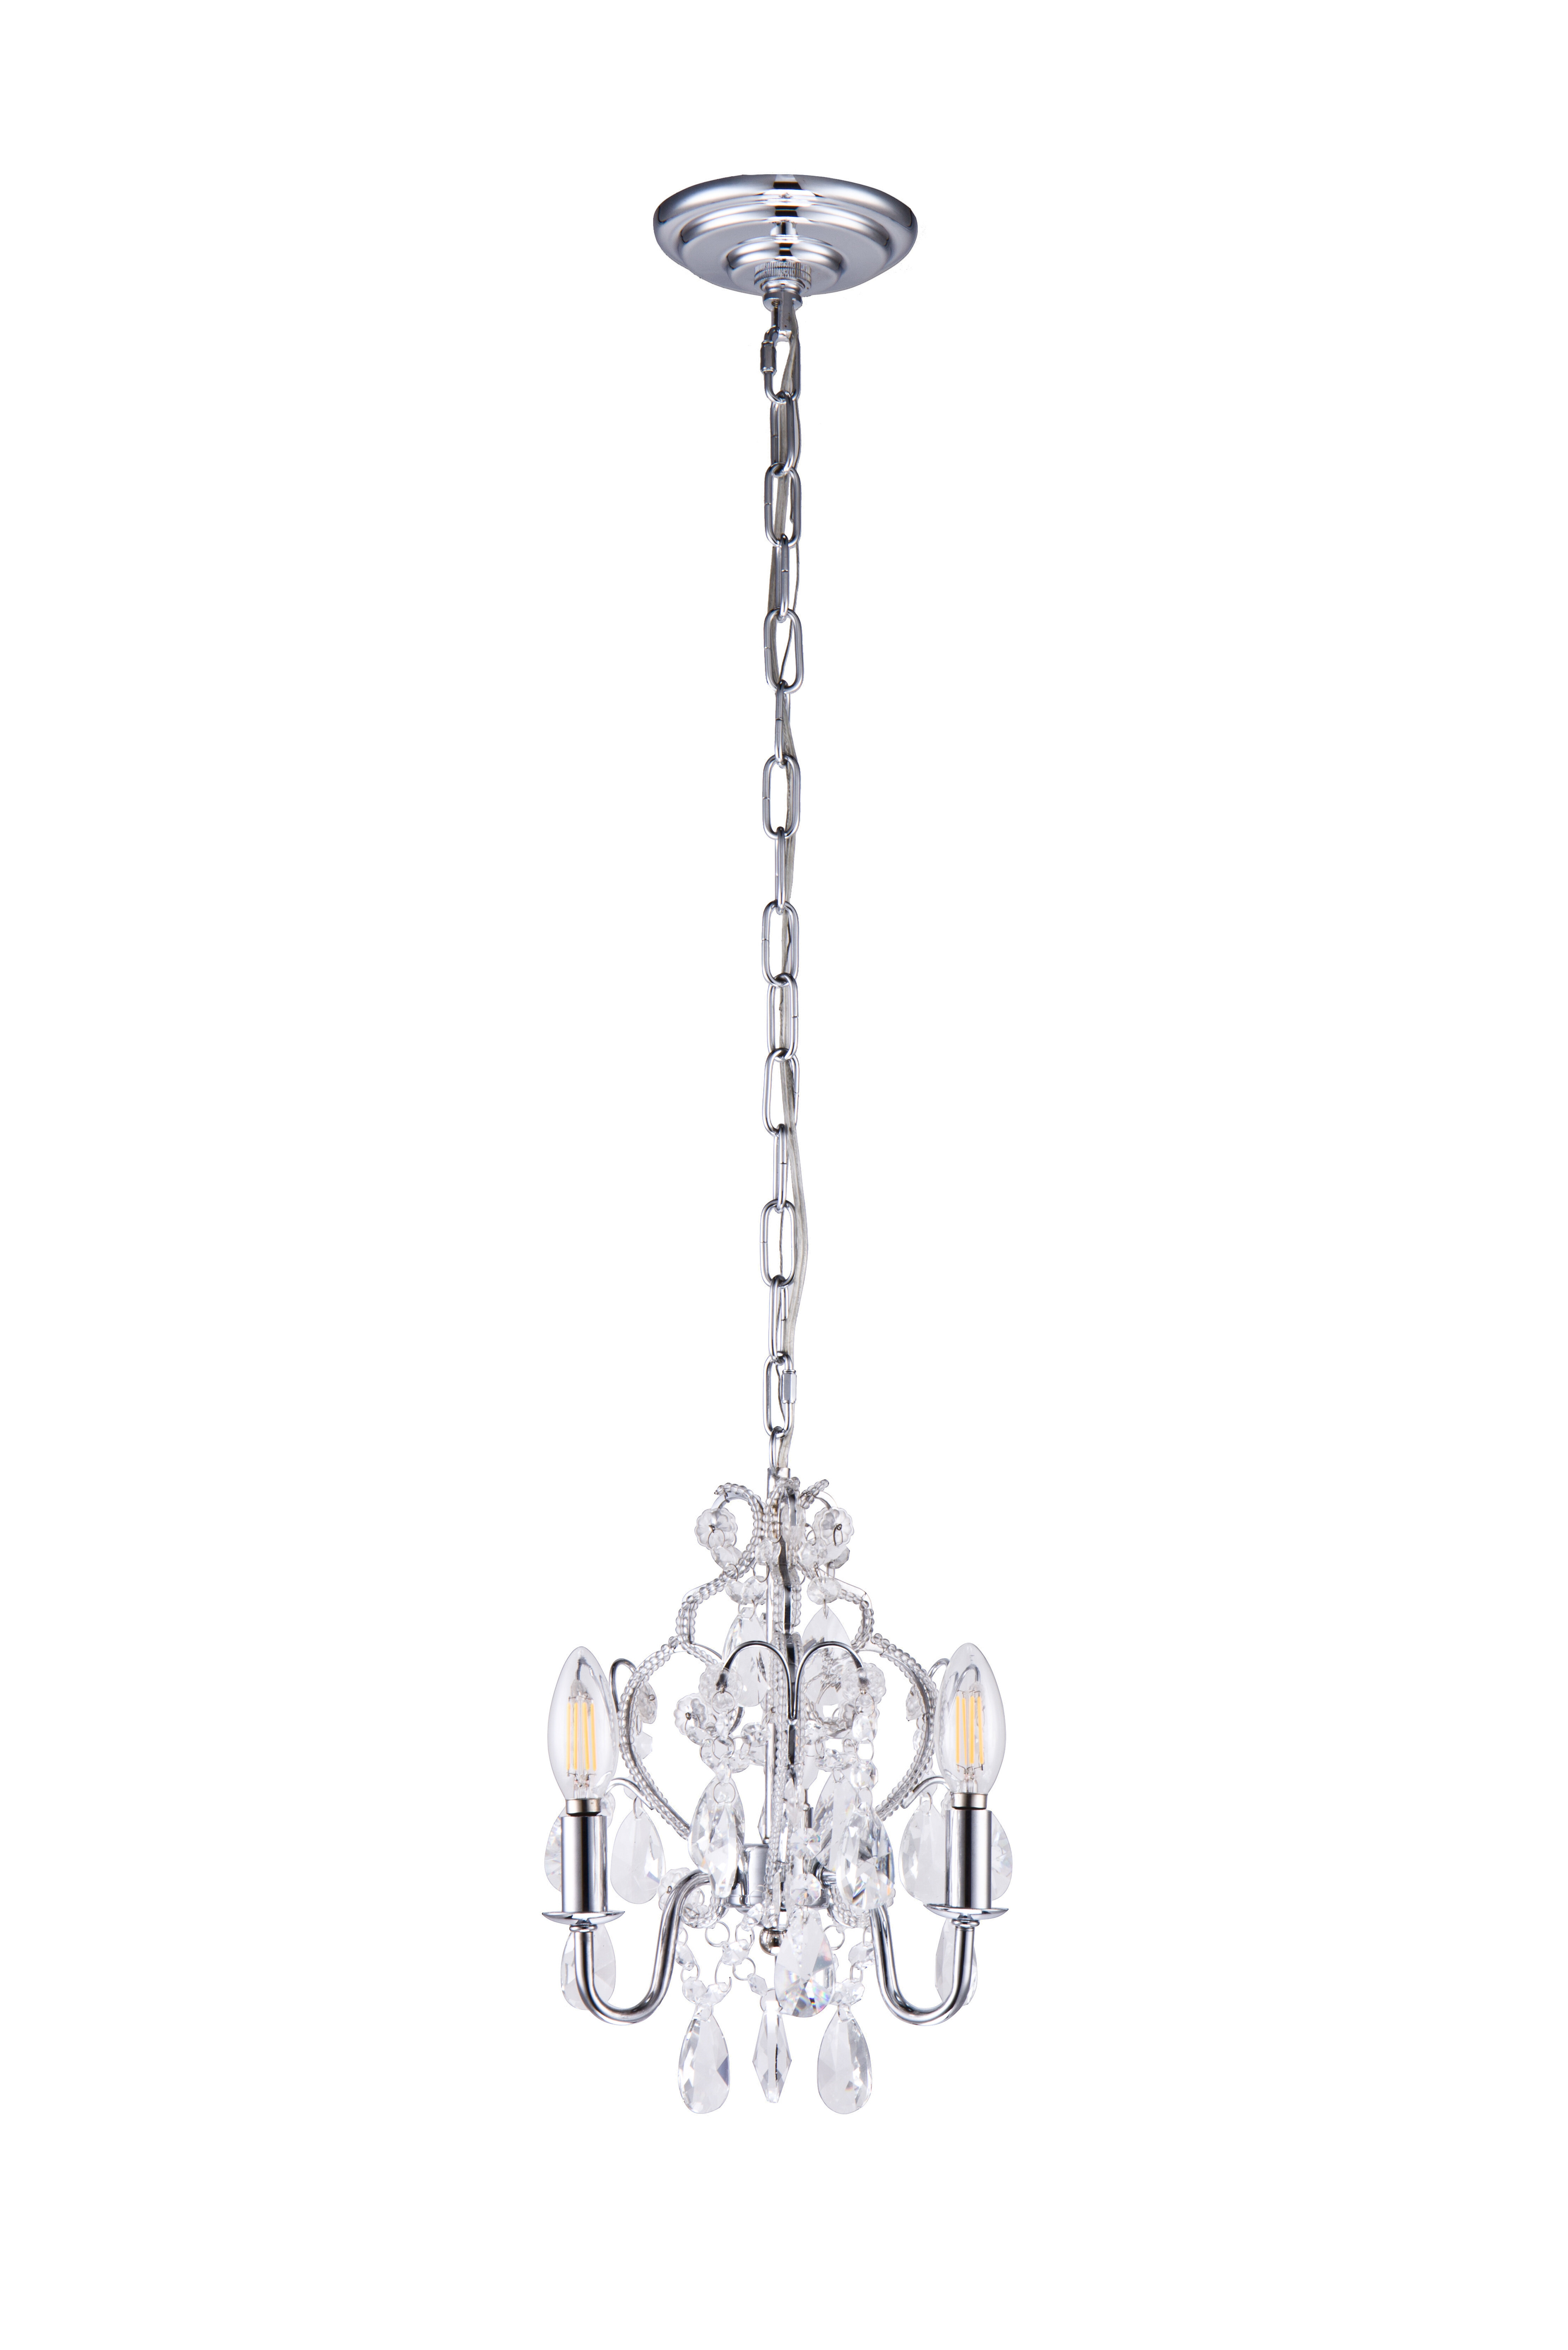 interior from savoy small chandelier for or light wide chandeliers love intended mini elegant amazing you white inch ll house in